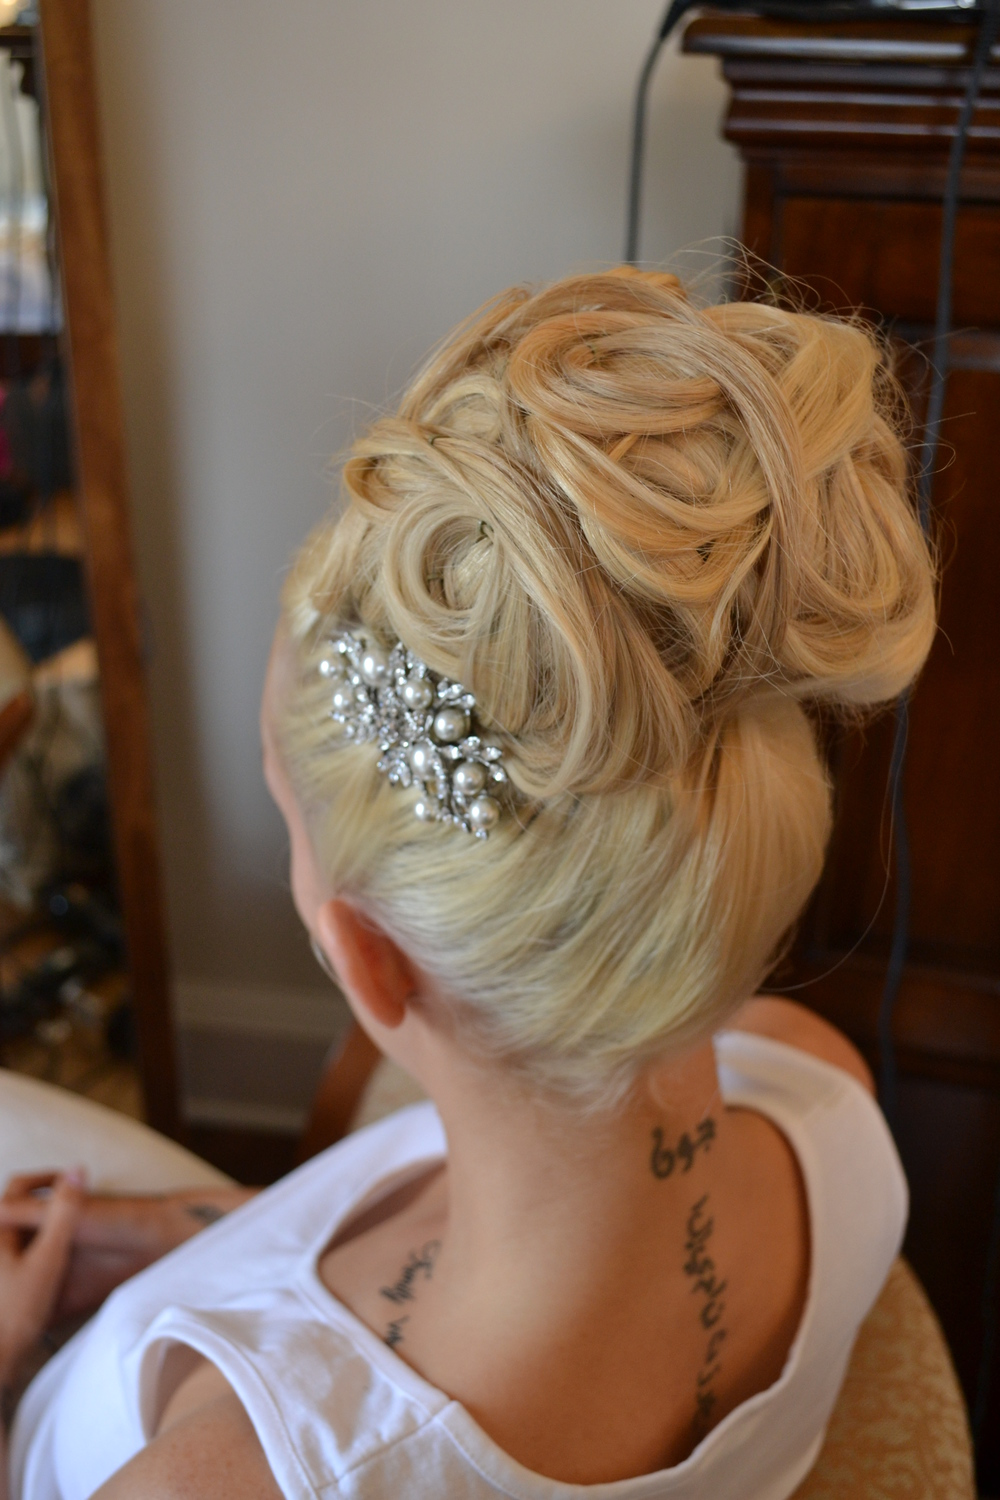 Soft Unstructured Wedding Hair Inspired By Red Carpet Trends 1000s Of Wedding Photos